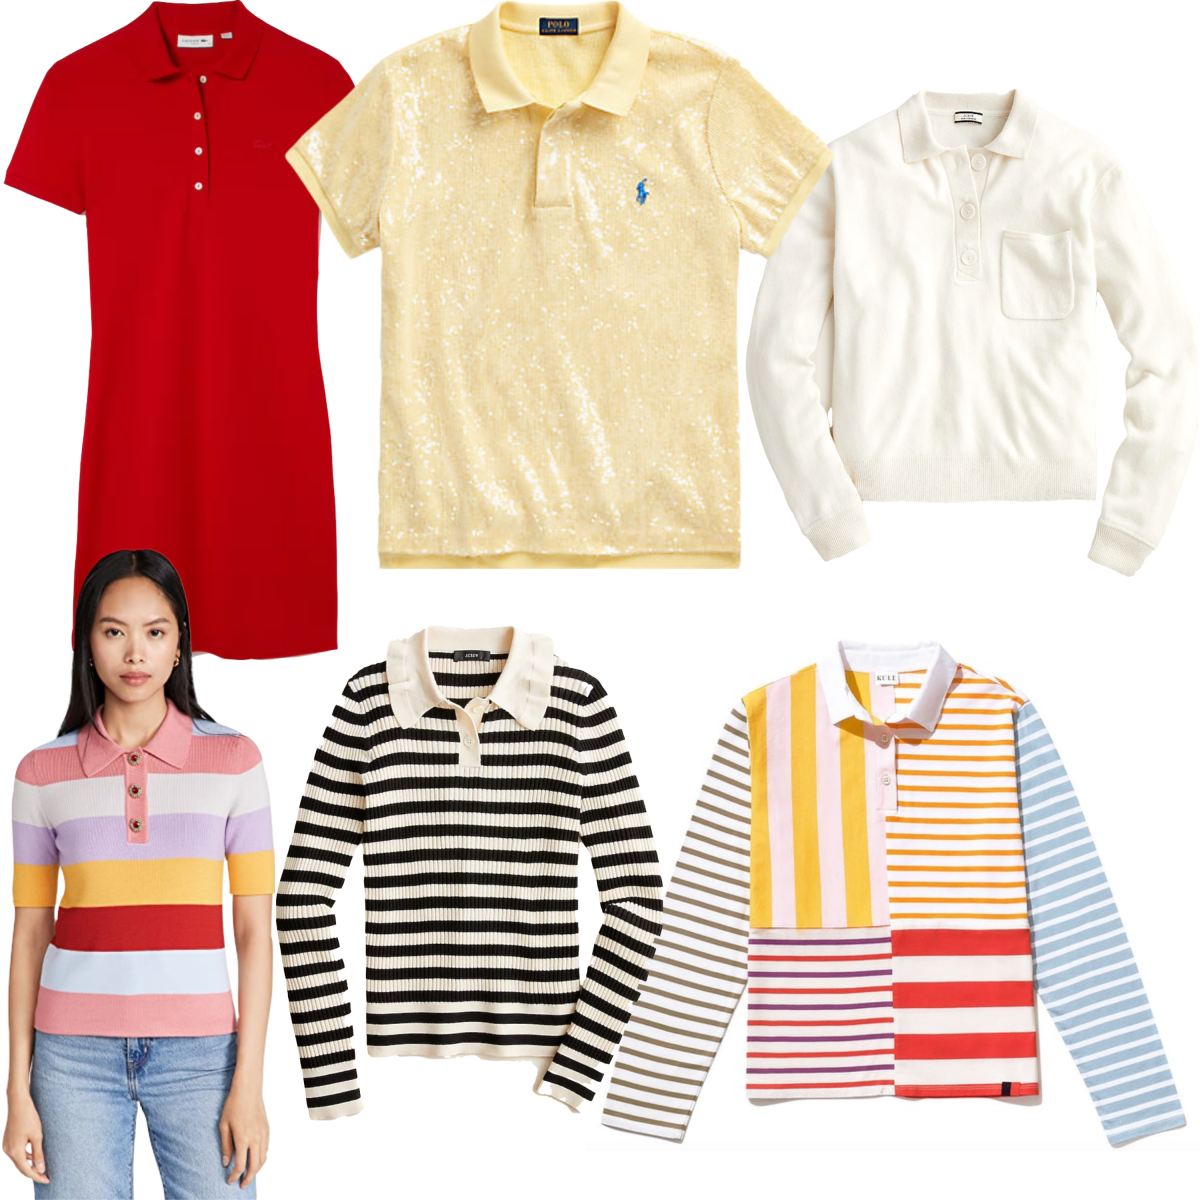 Stylish polos for women